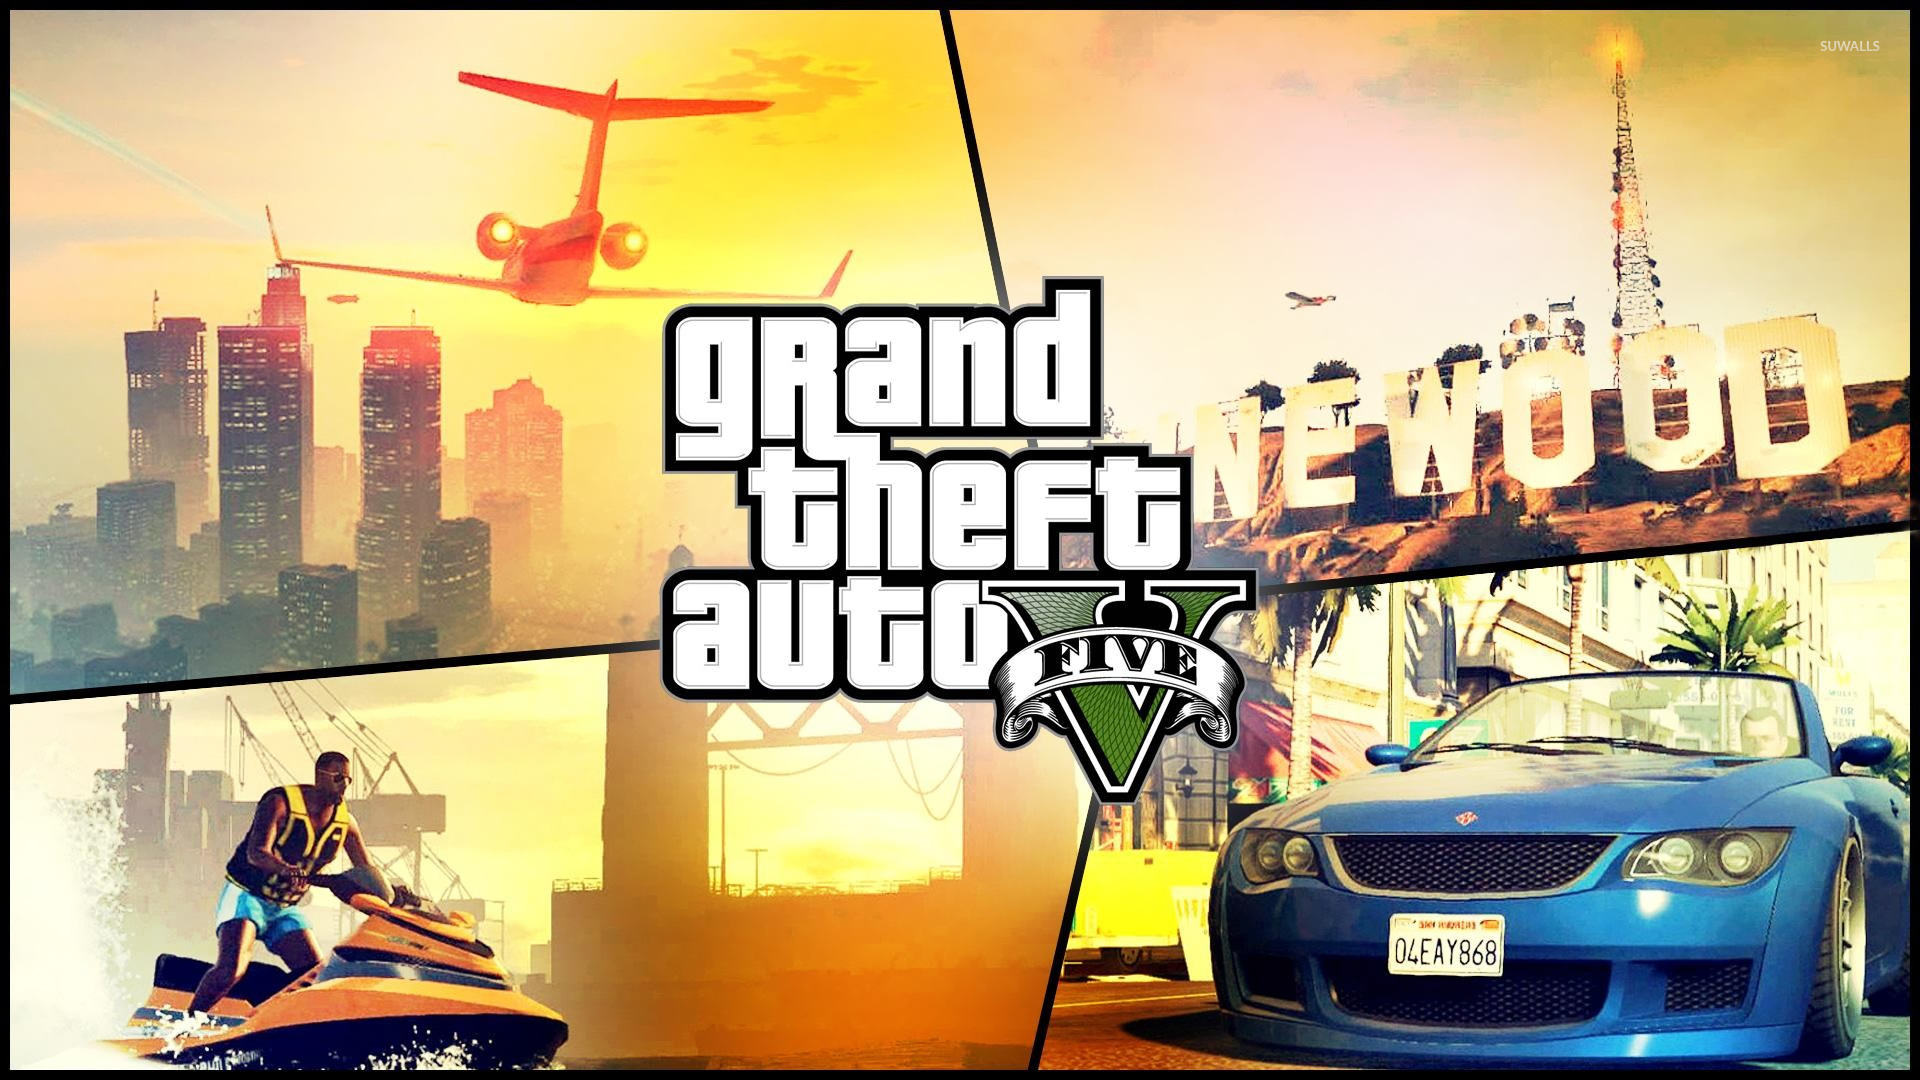 Grand Theft Auto V wallpaper   Game wallpapers   15718 1920x1080